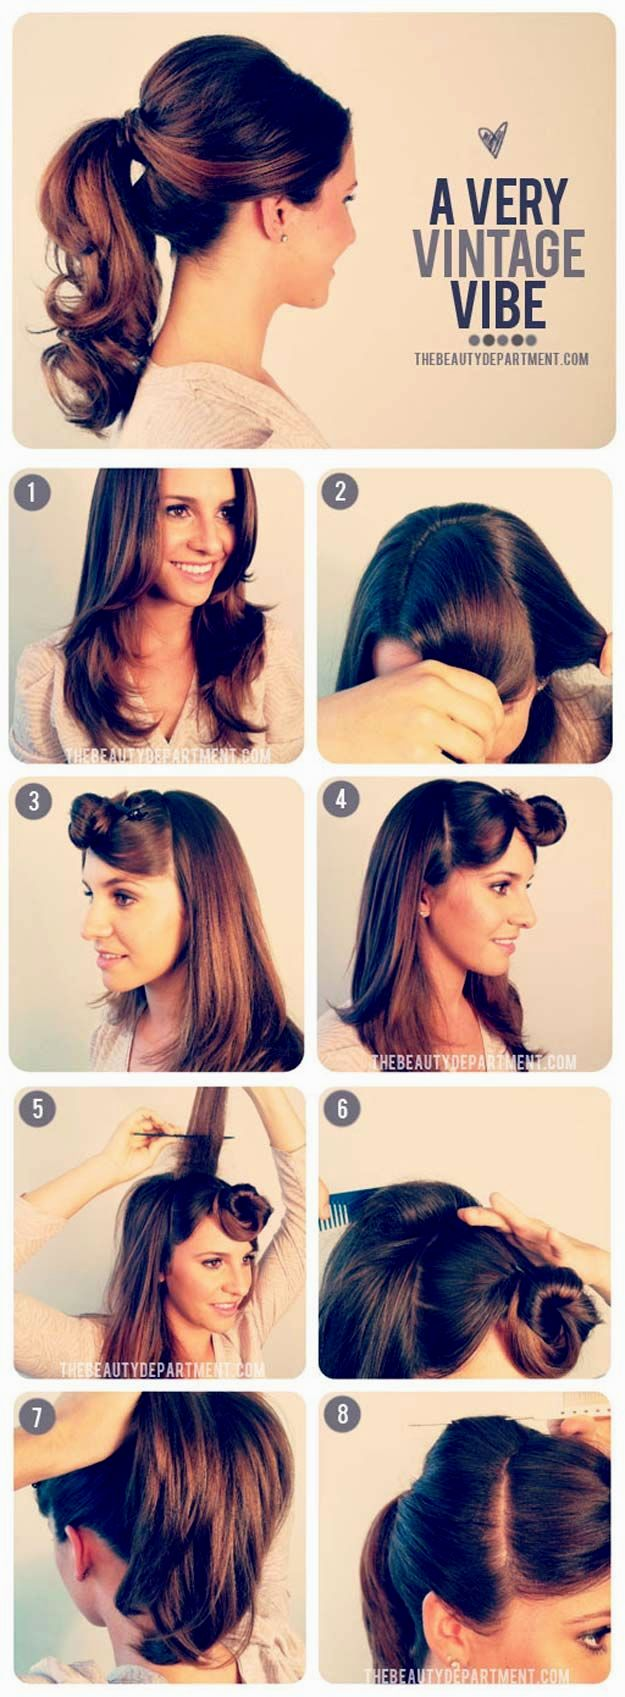 fantastic ball hairstyles inspiration-charming ball hairstyles layout